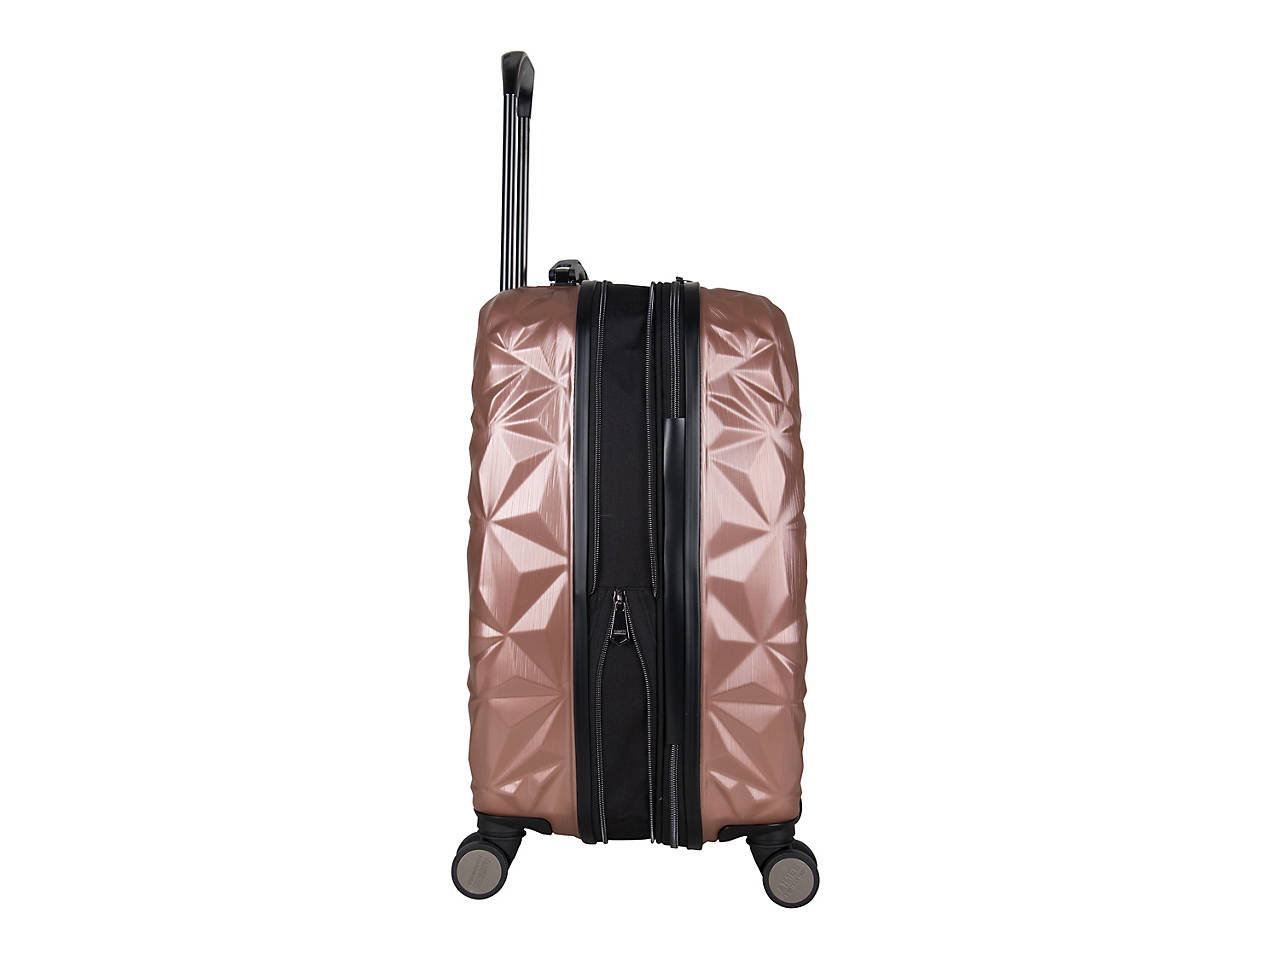 6d09df936 Aimee Kestenberg - Luggage Geo Molded 20-Inch Carry-On Hard Shell ...